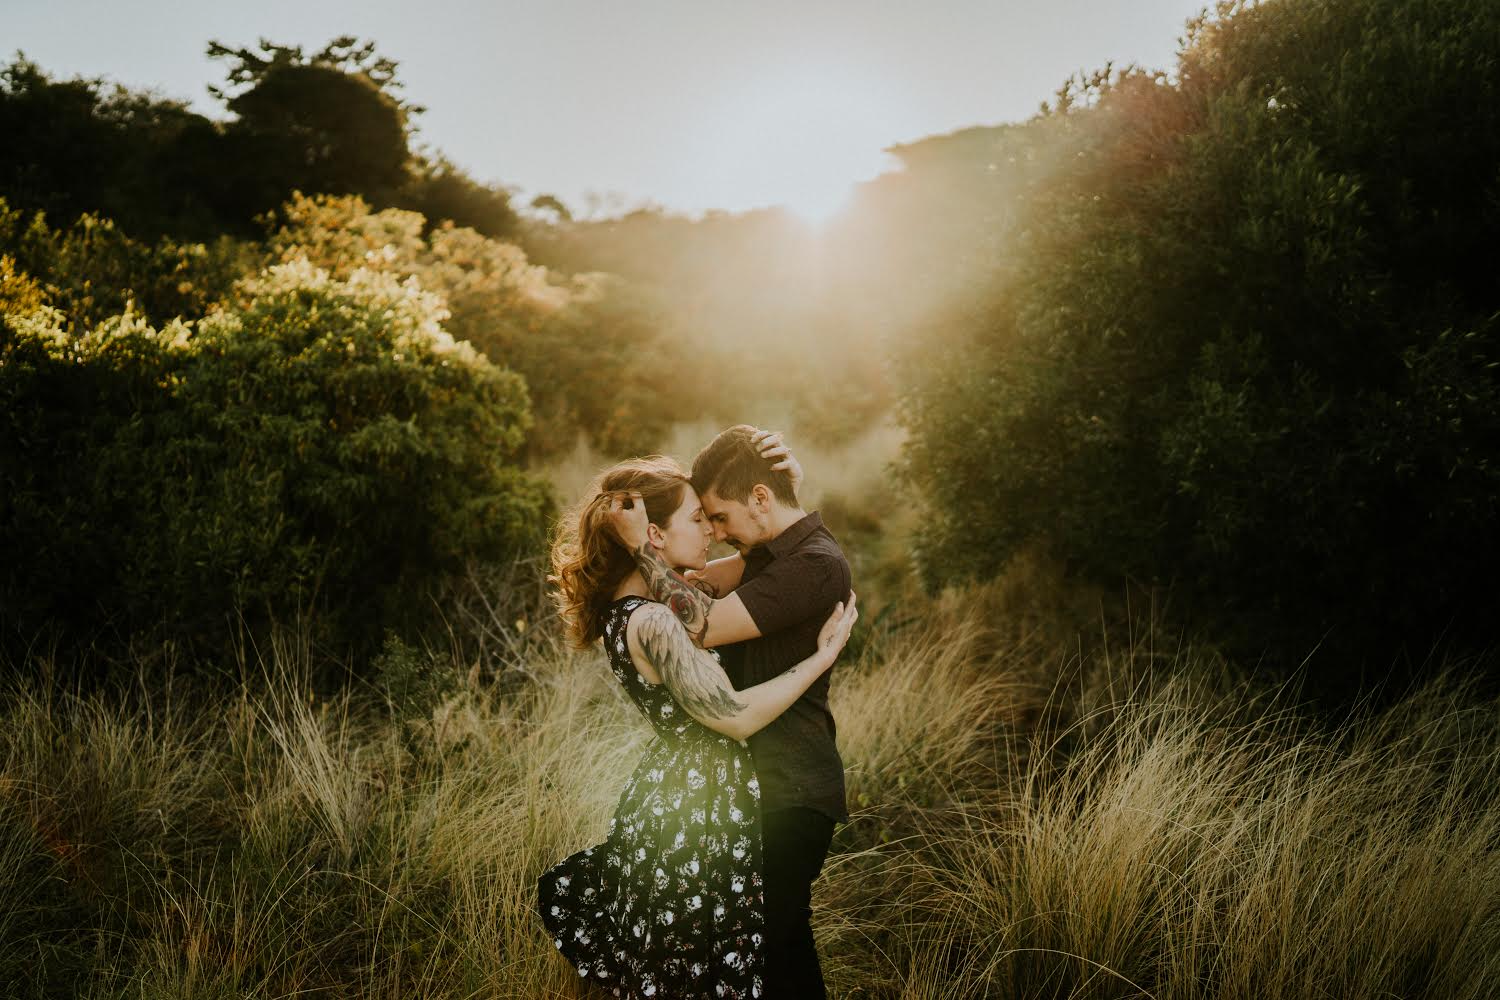 couple embracing with the sun setting behind them